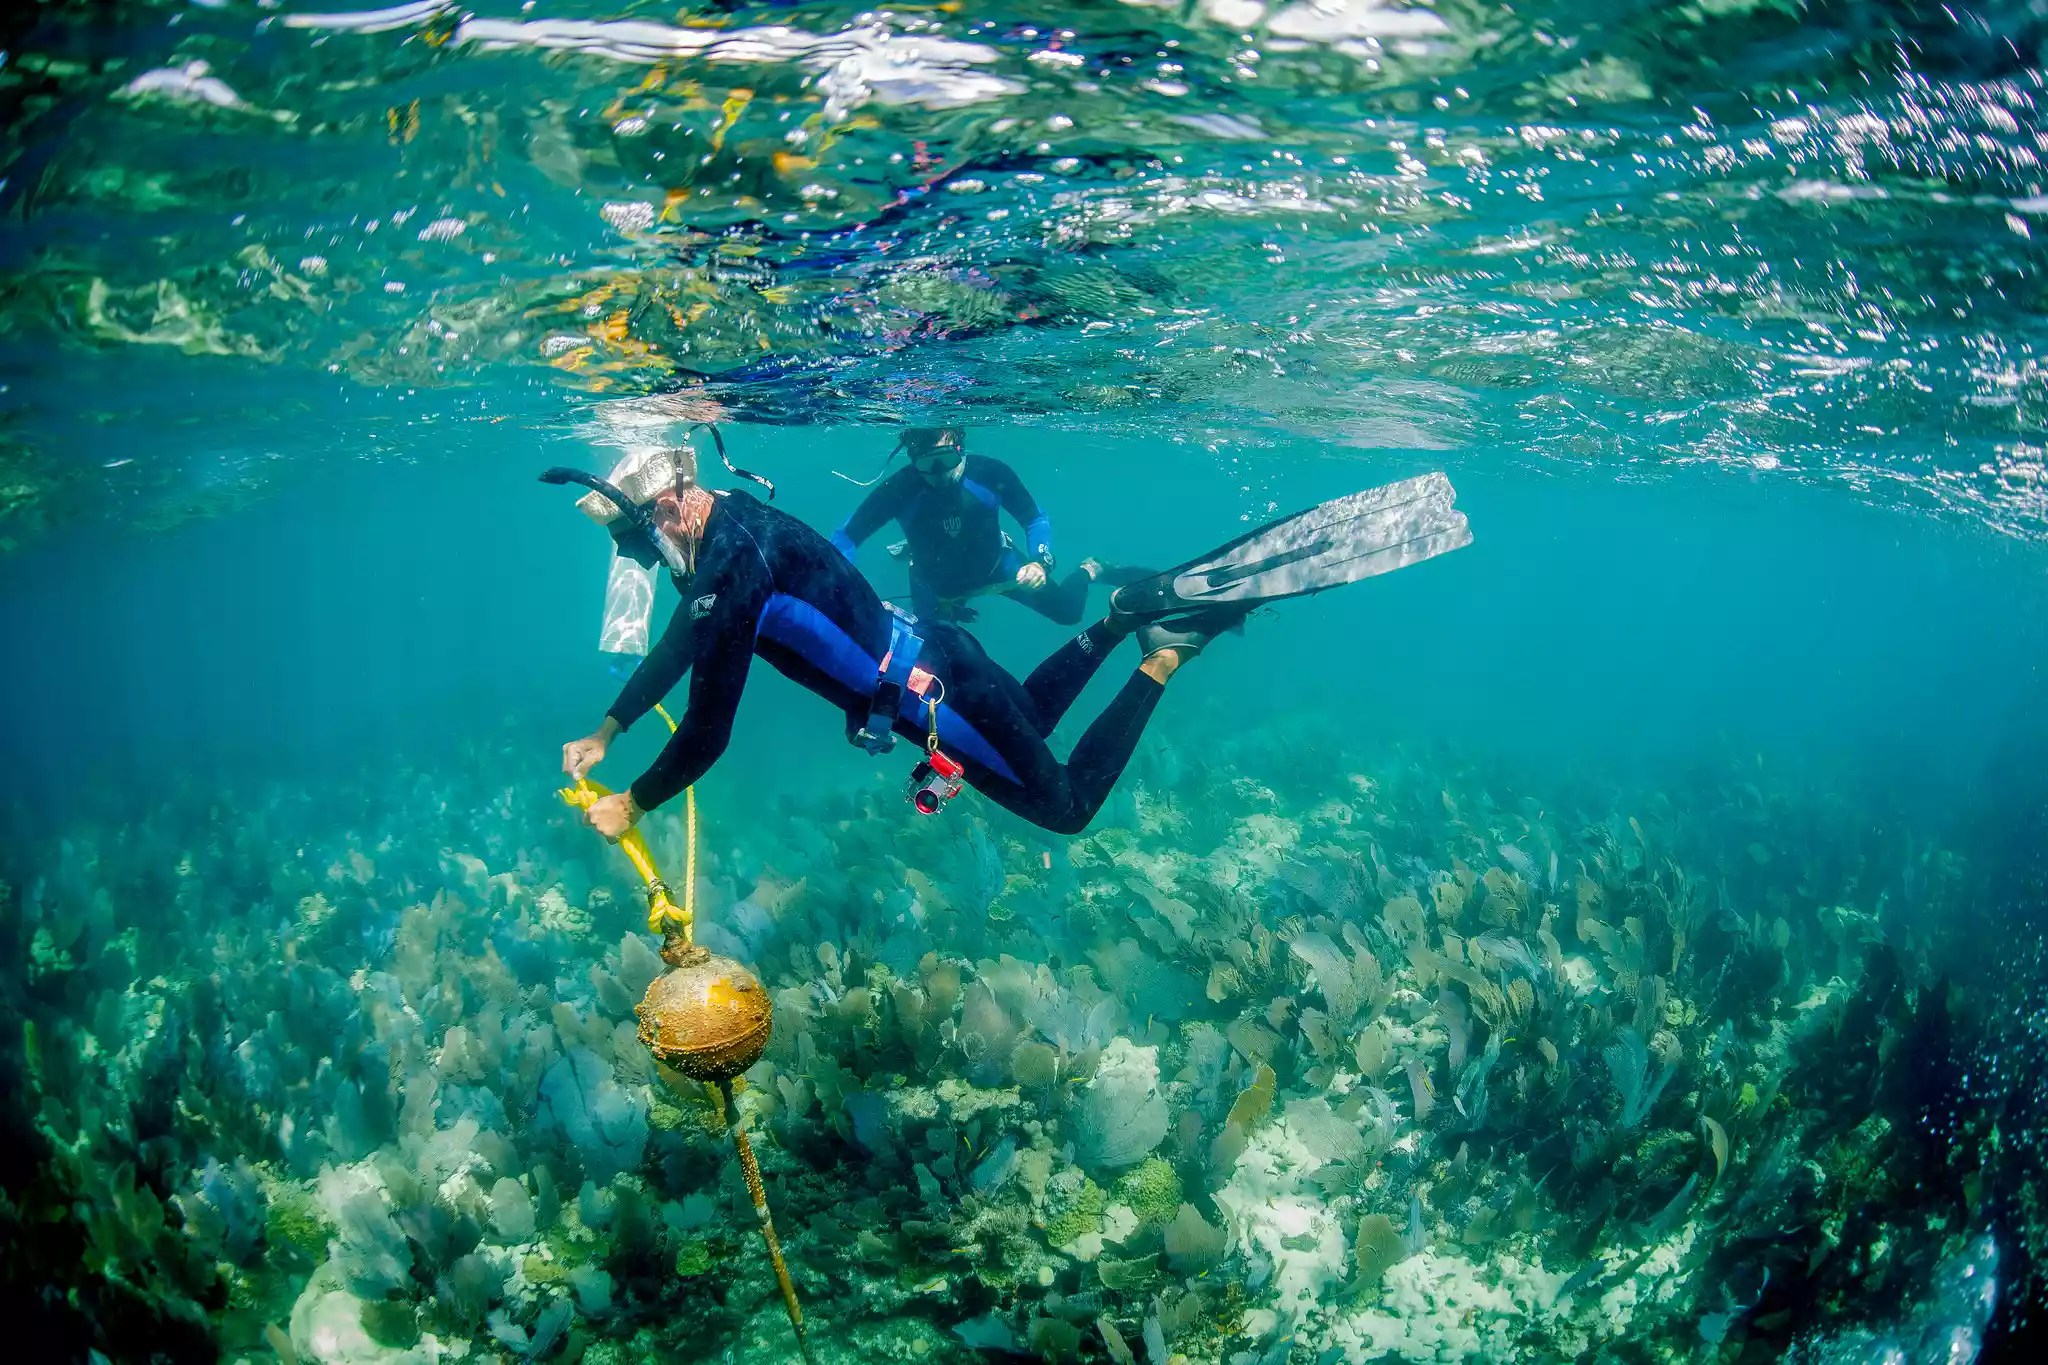 Divers survey the waters in a marine sanctuary